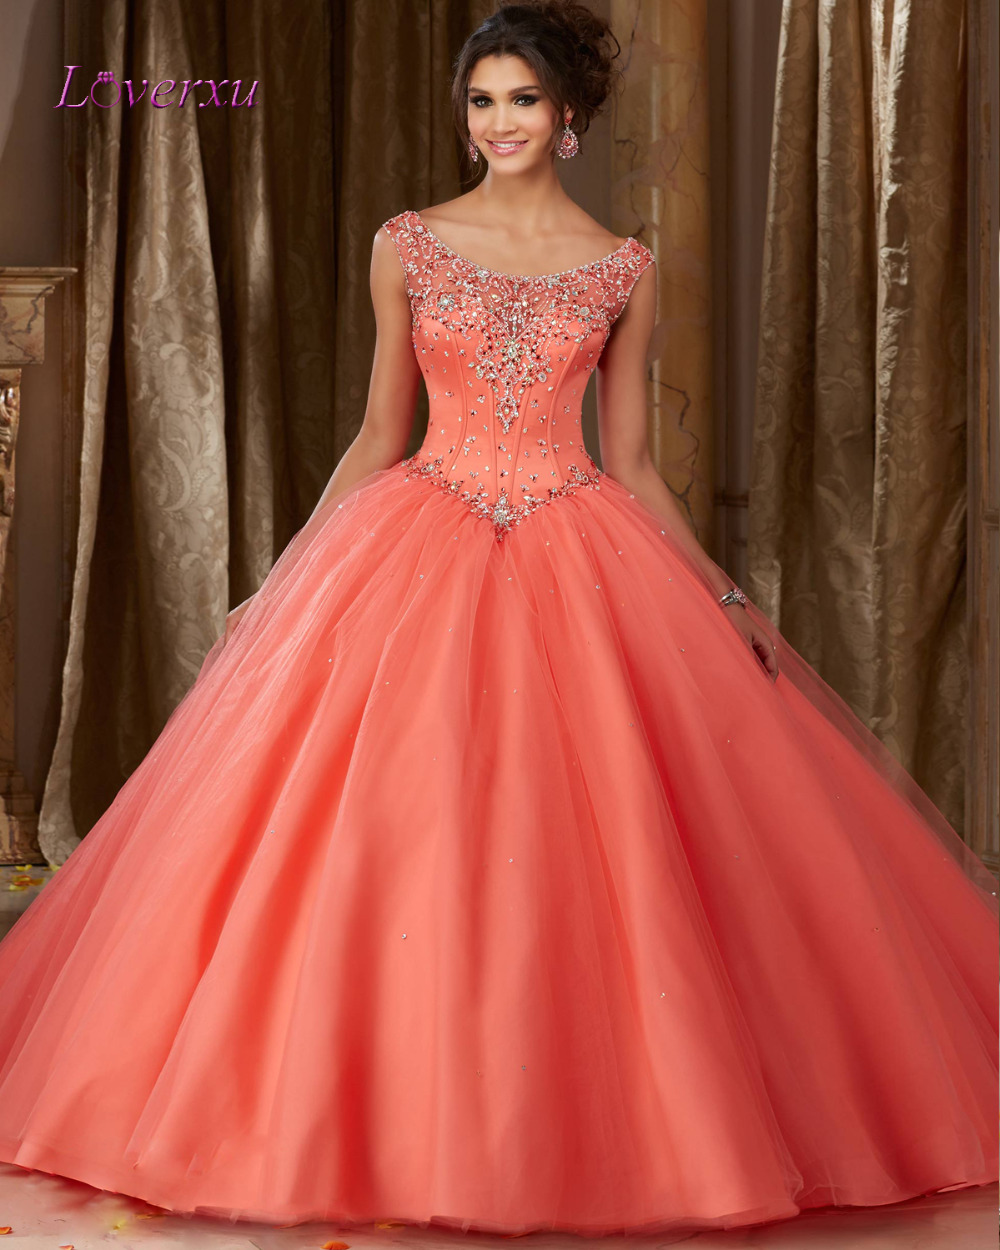 Buy Loverxu Sexy Scoop Neck Sequined Ball Gown Quinceanera